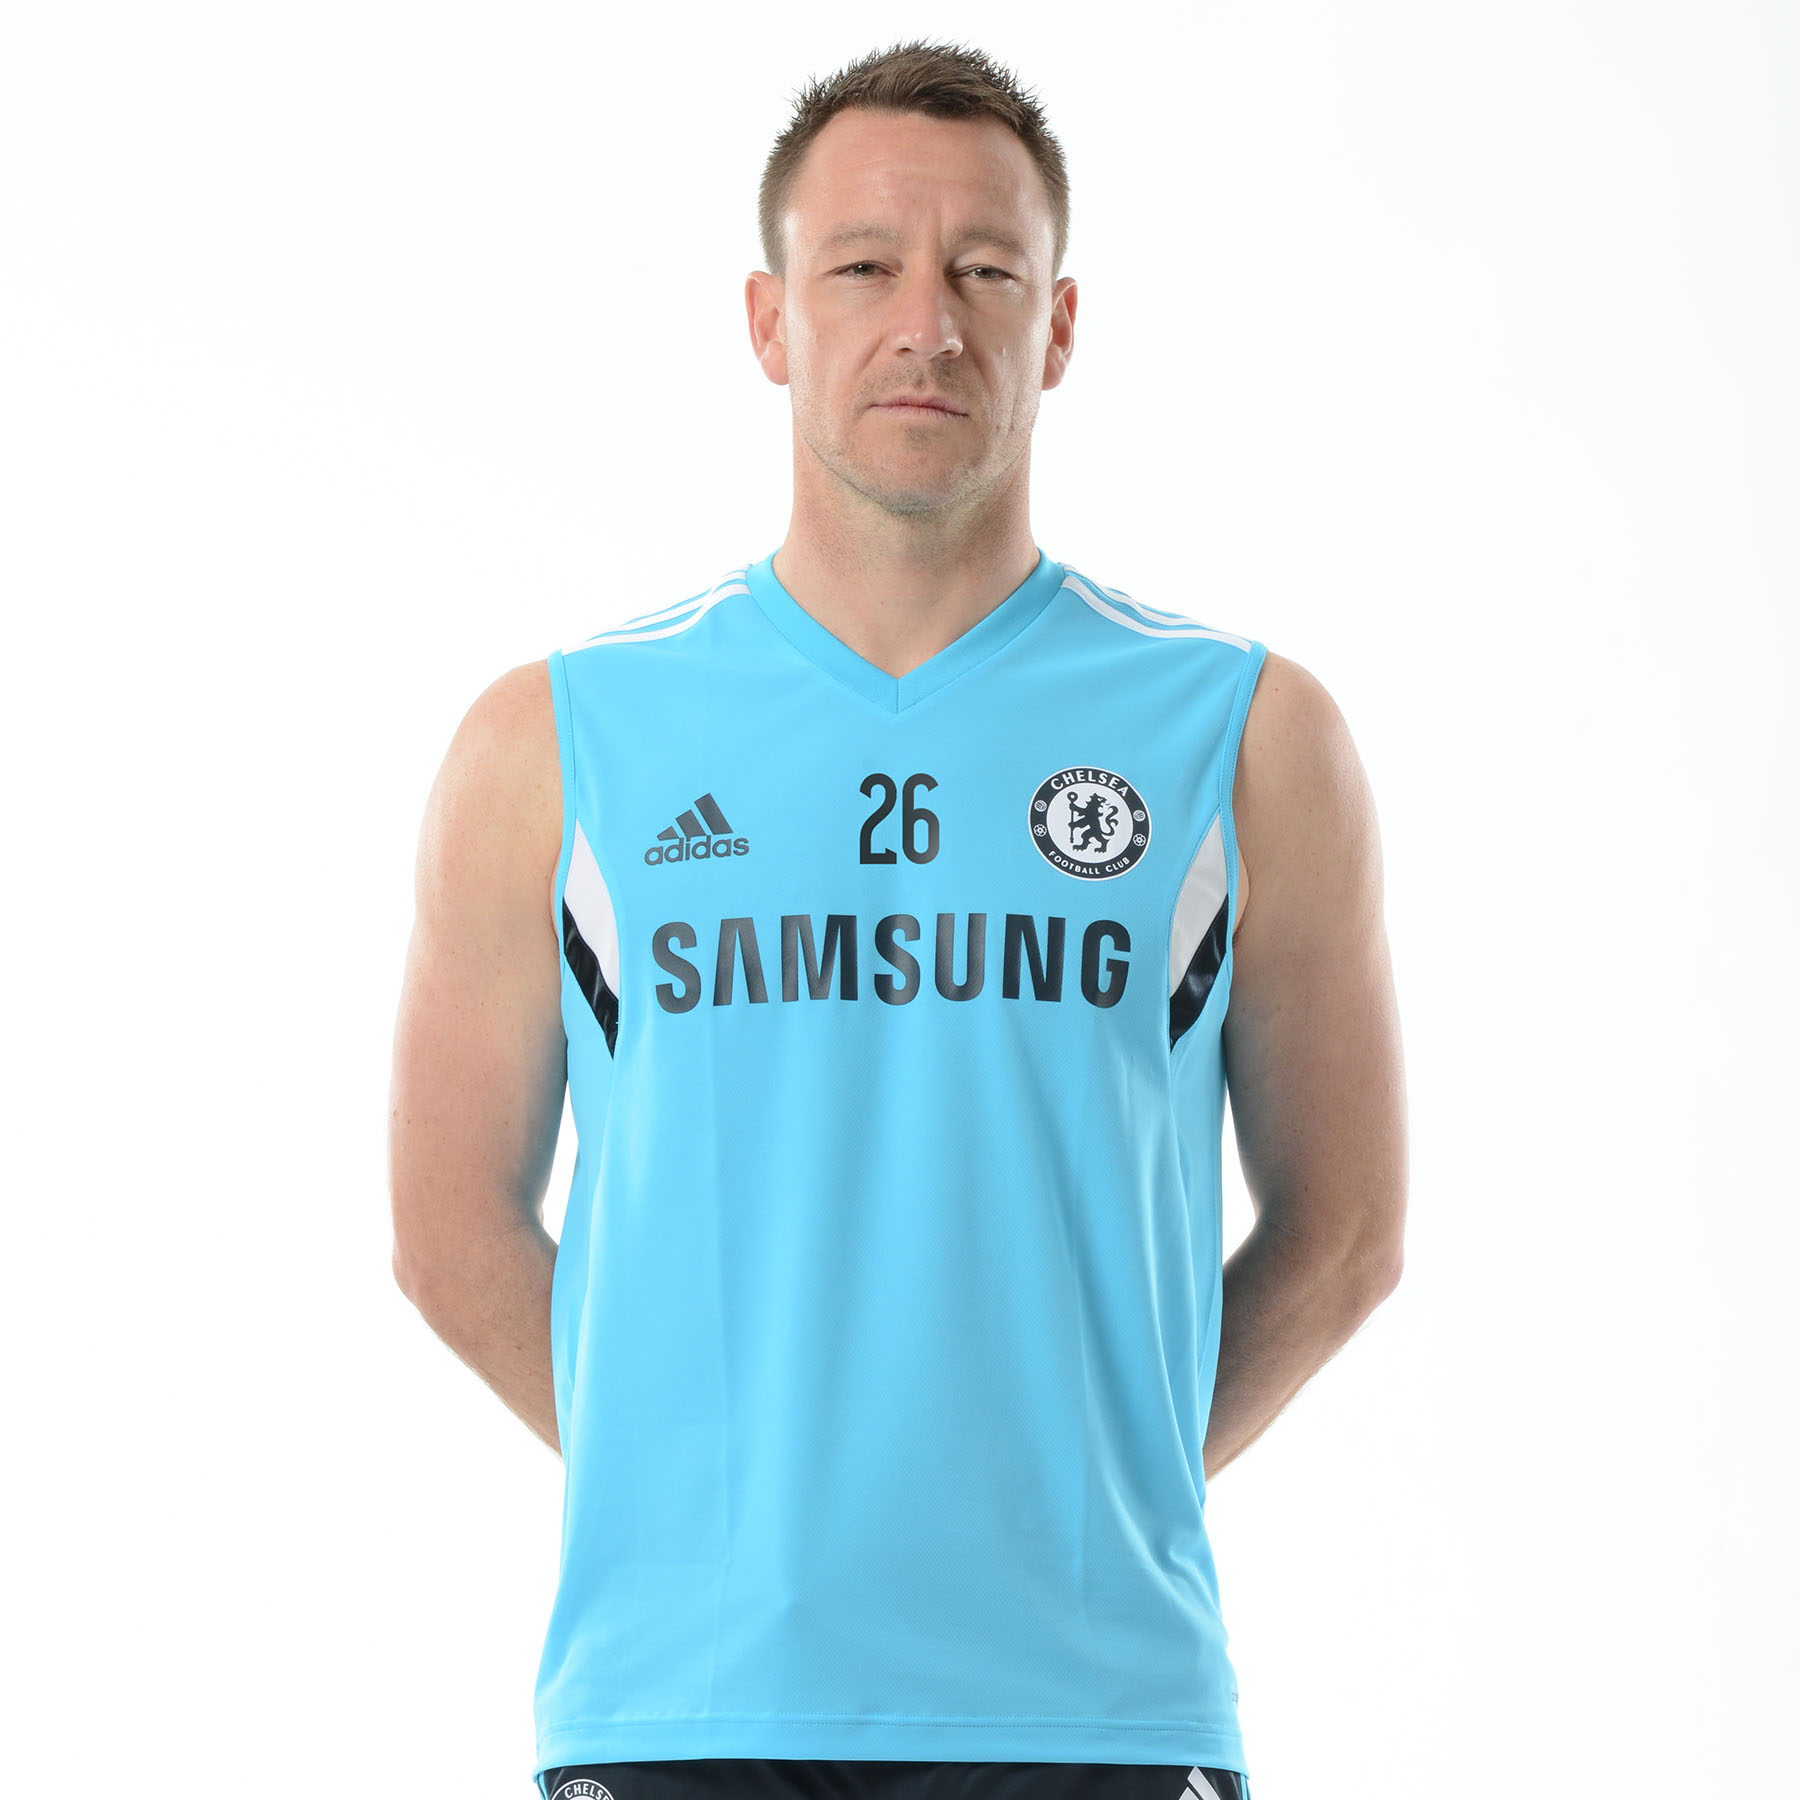 Chelsea Training Sleeveless Shirt Blue   Stay cool as the game heats up with this intense blue Chelsea sleeveless jersey.   Featuring Formotion™ fabric technology, the Chelsea club crest lion badge and adidas performance logo and stripes, this slim fit Chelsea leisure top offers pro-level comfort.   Benefits of this Chelsea Training Jersey •Formotion™ fabric technology •Sleeveless design •Chelsea club crest lion badge •adidas performance logo and stripes